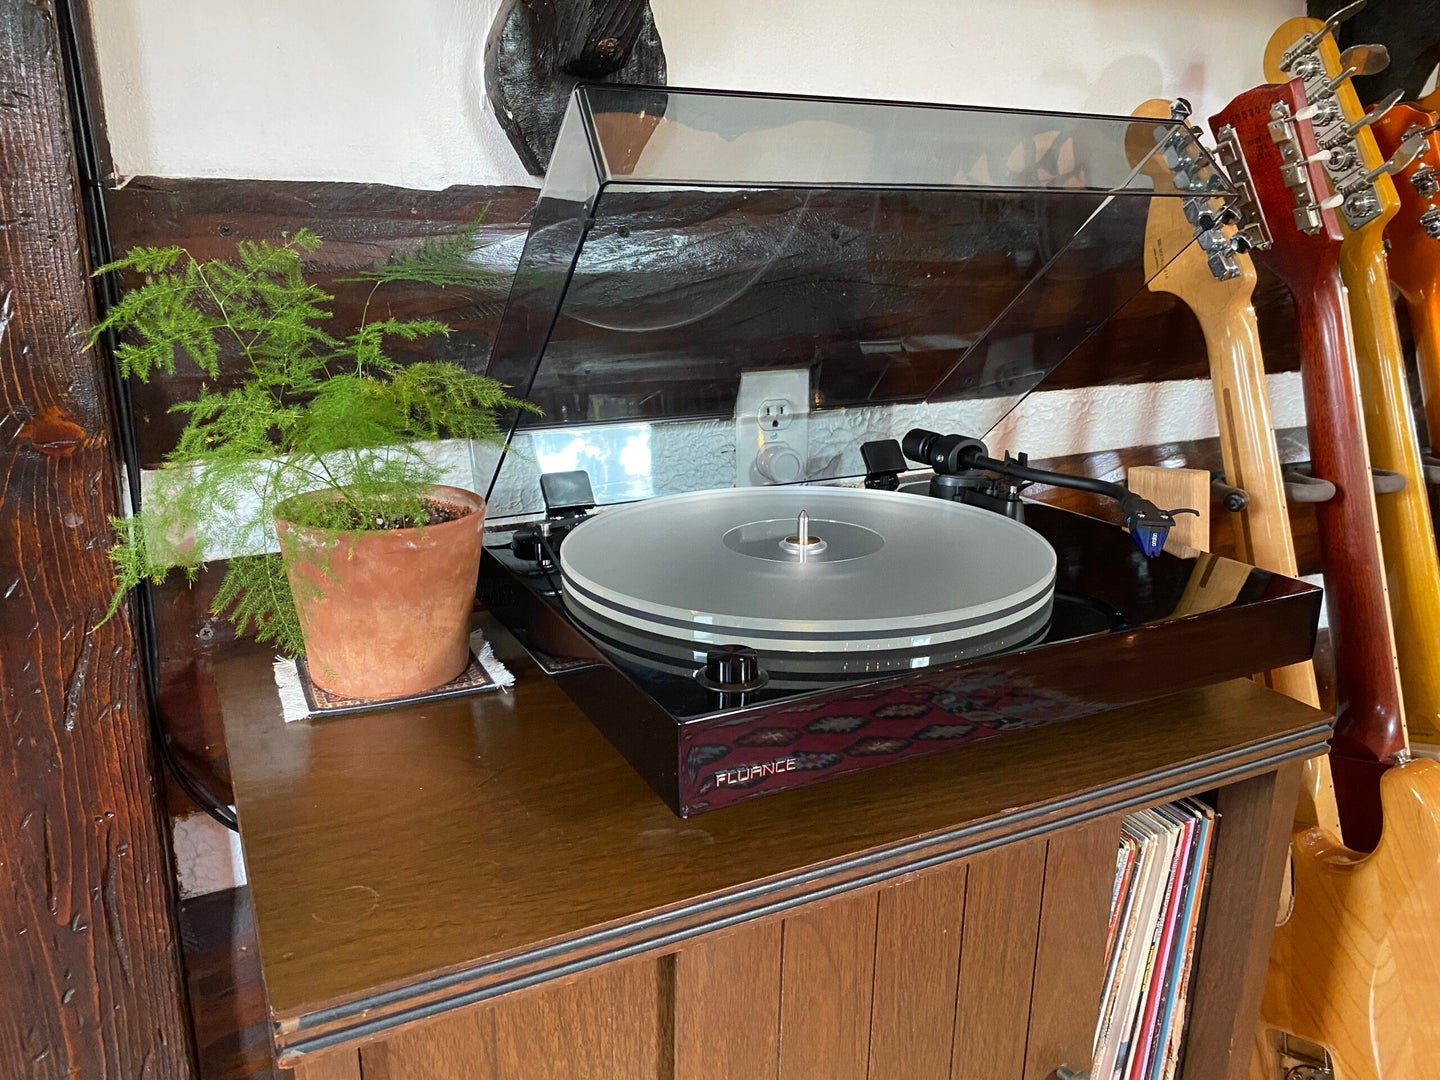 Fluance RT85 turntable on a stand